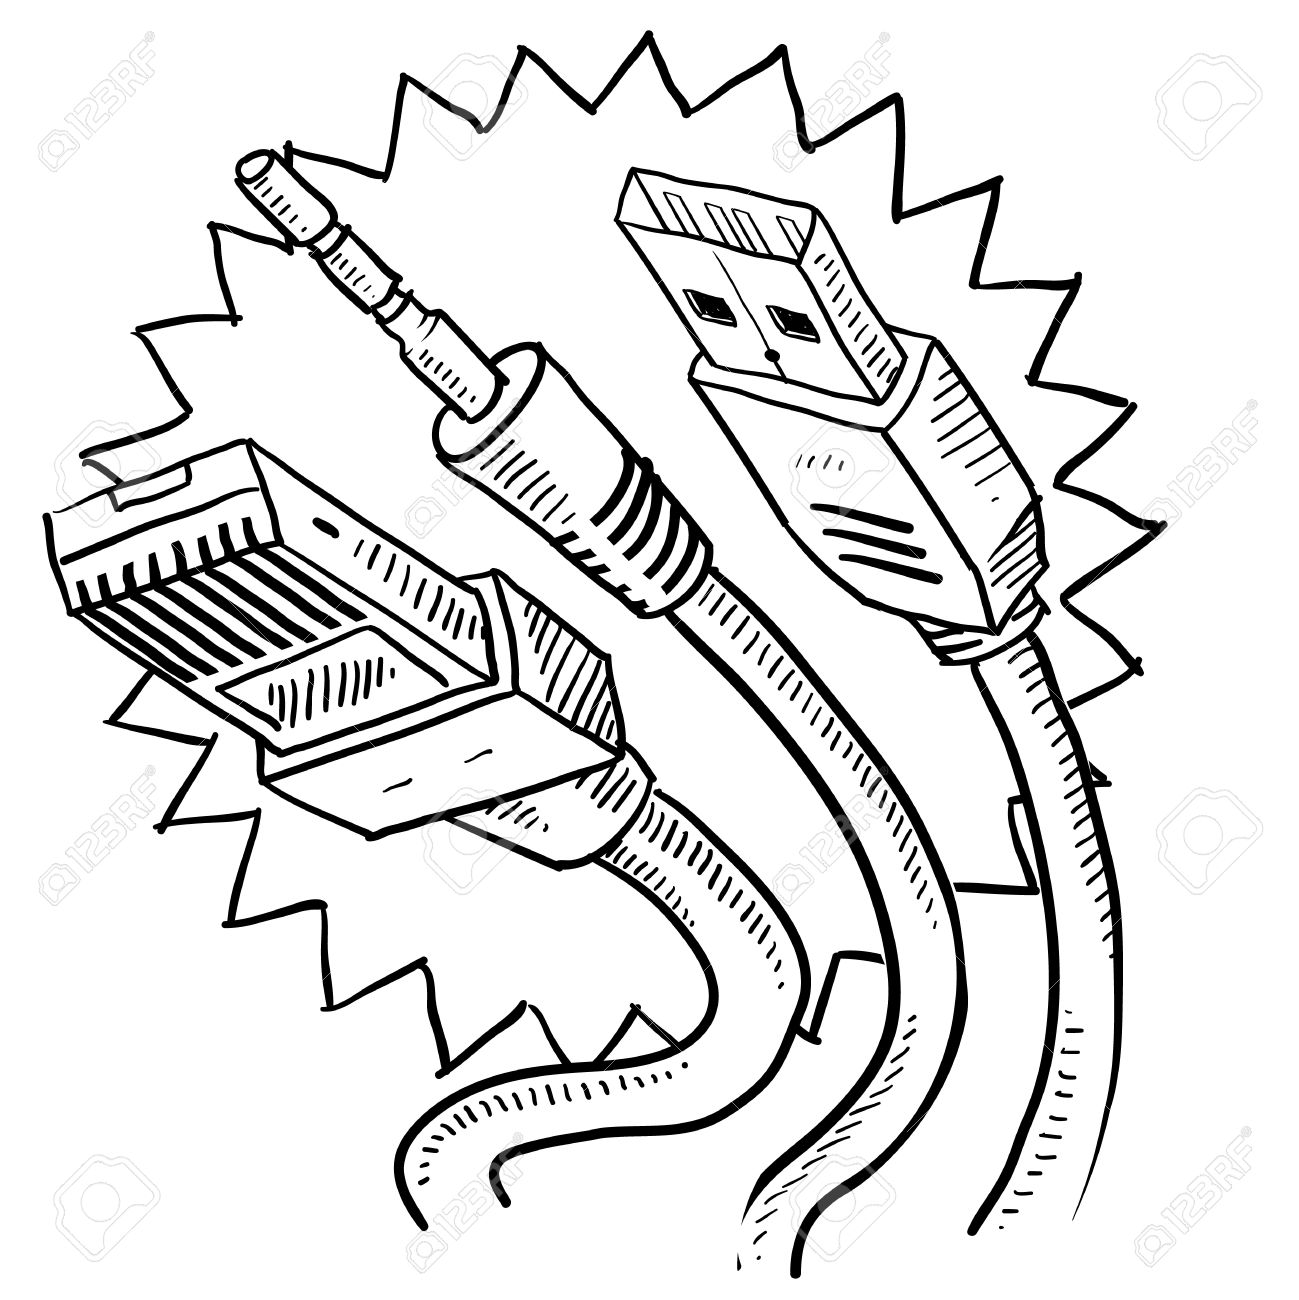 hight resolution of doodle style computer cables sketch in vector format includes auxiliary jack usb and ethernet